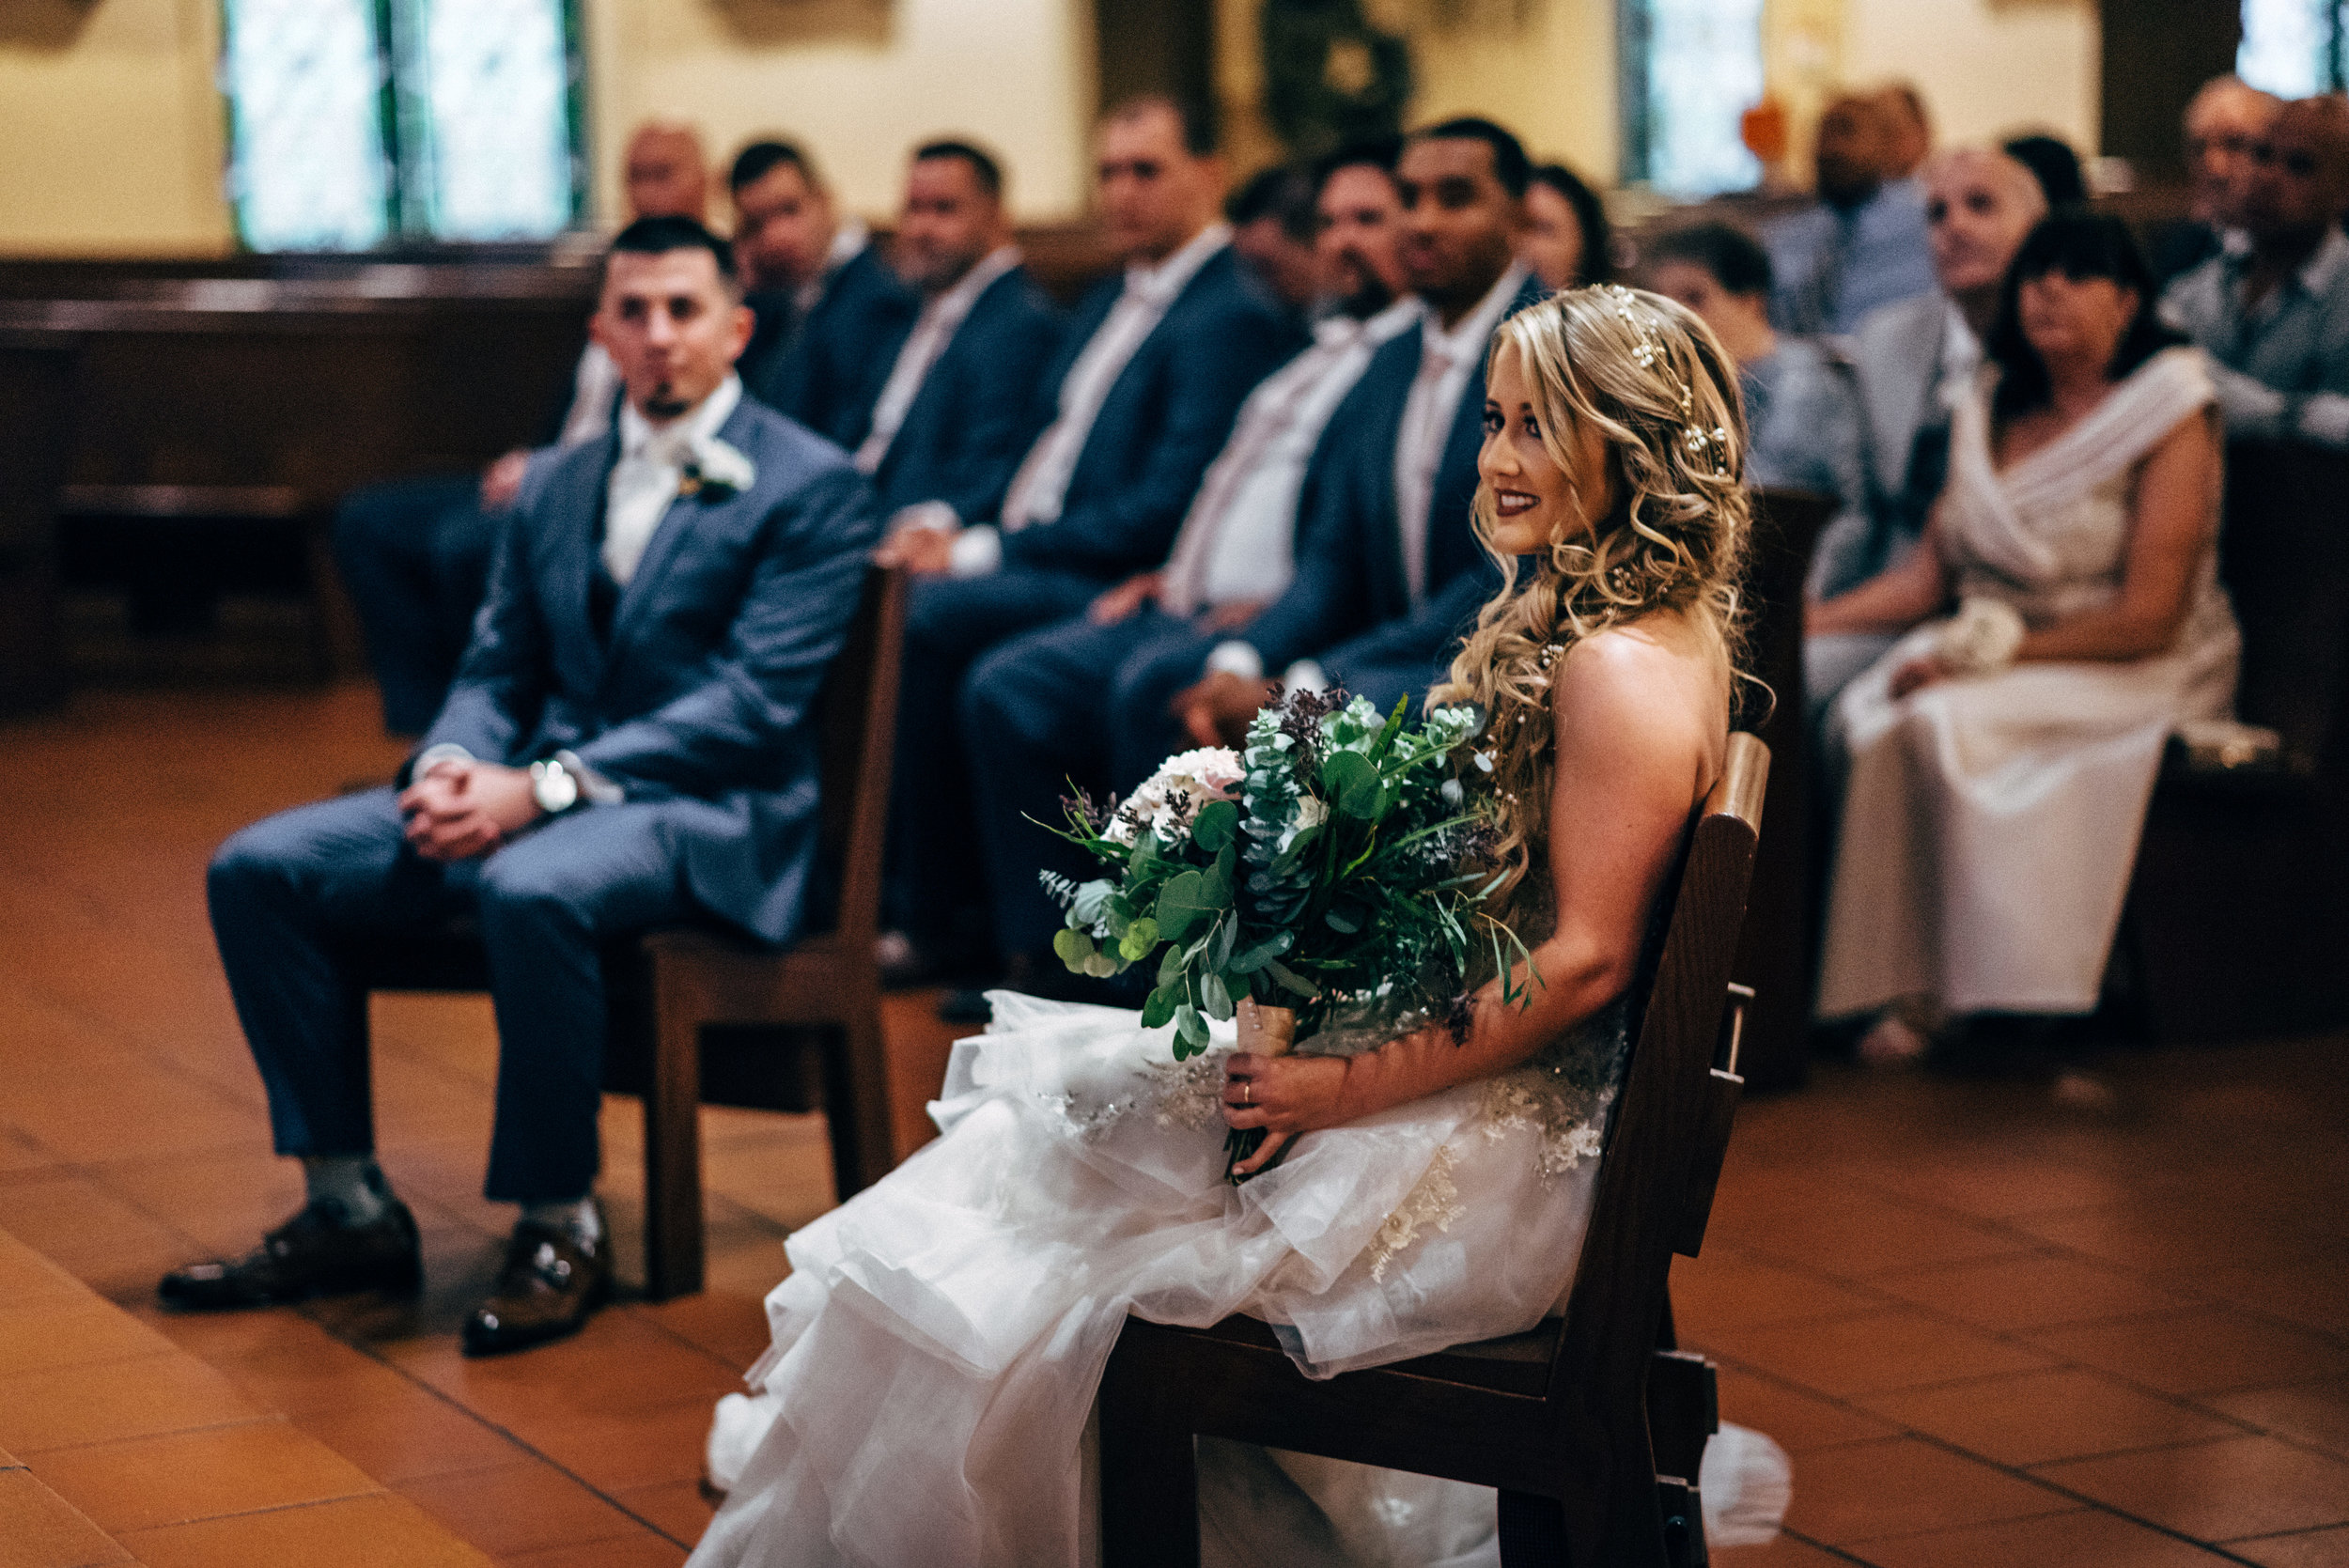 bride holding her bouquet while sitting during wedding ceremony at St. Francis of Assisi Catholic Church